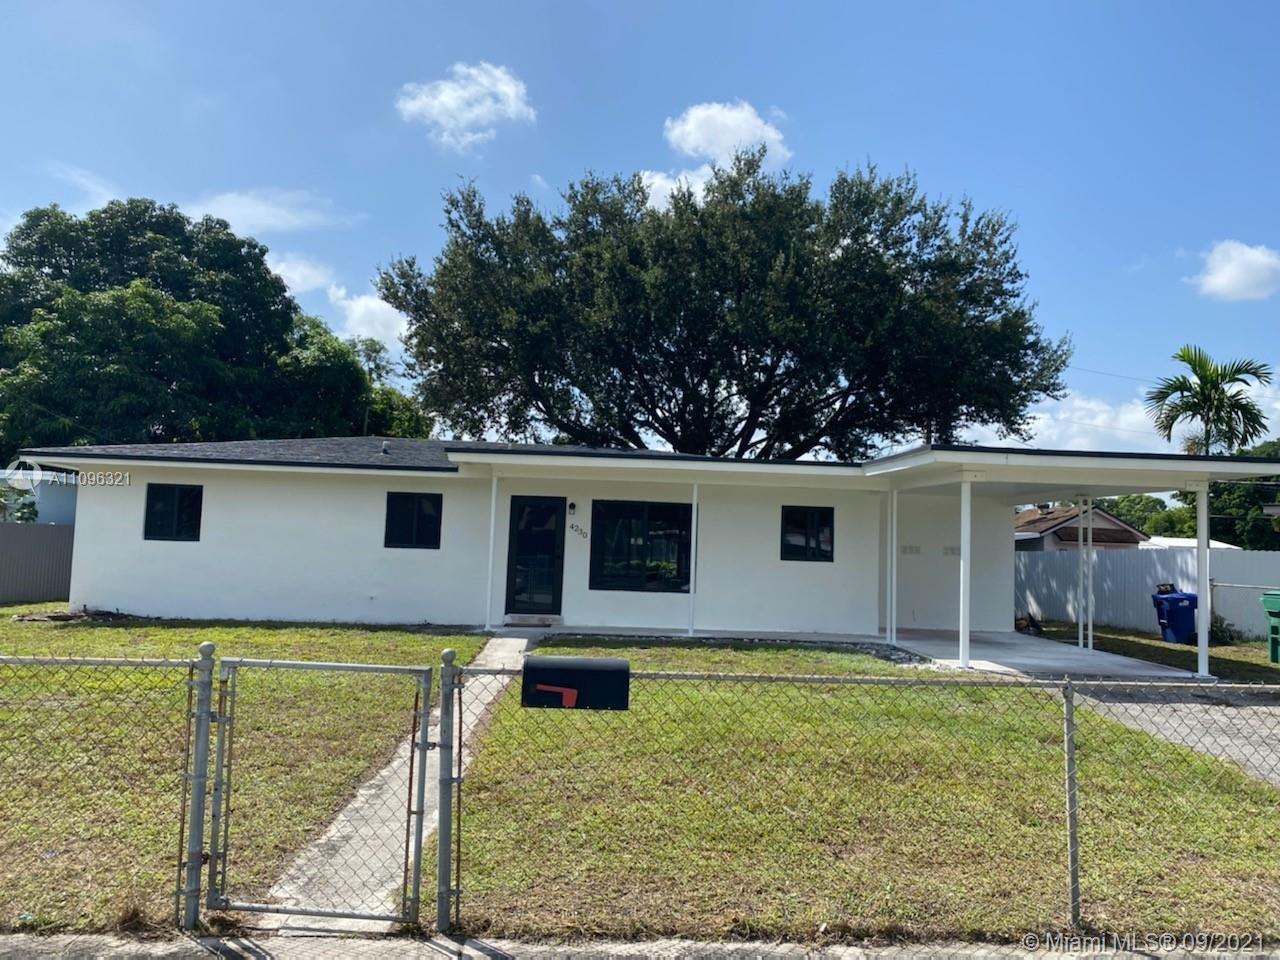 Single Family Home,For Sale,4230 NW 172nd Dr, Miami Gardens, Florida 33055,Brickell,realty,broker,condos near me